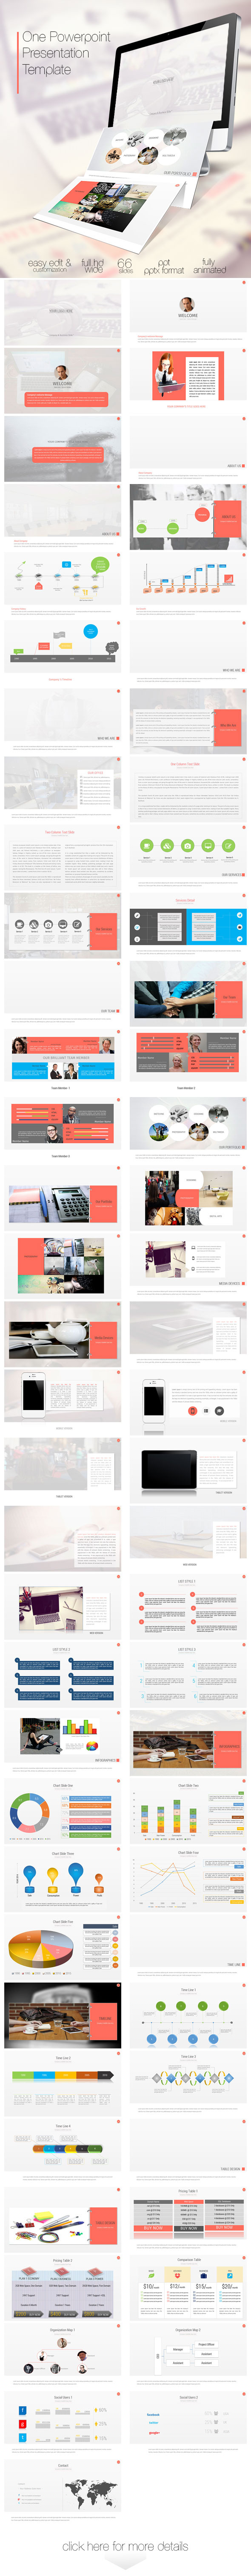 GraphicRiver One Power Point Presentation Template 8782828